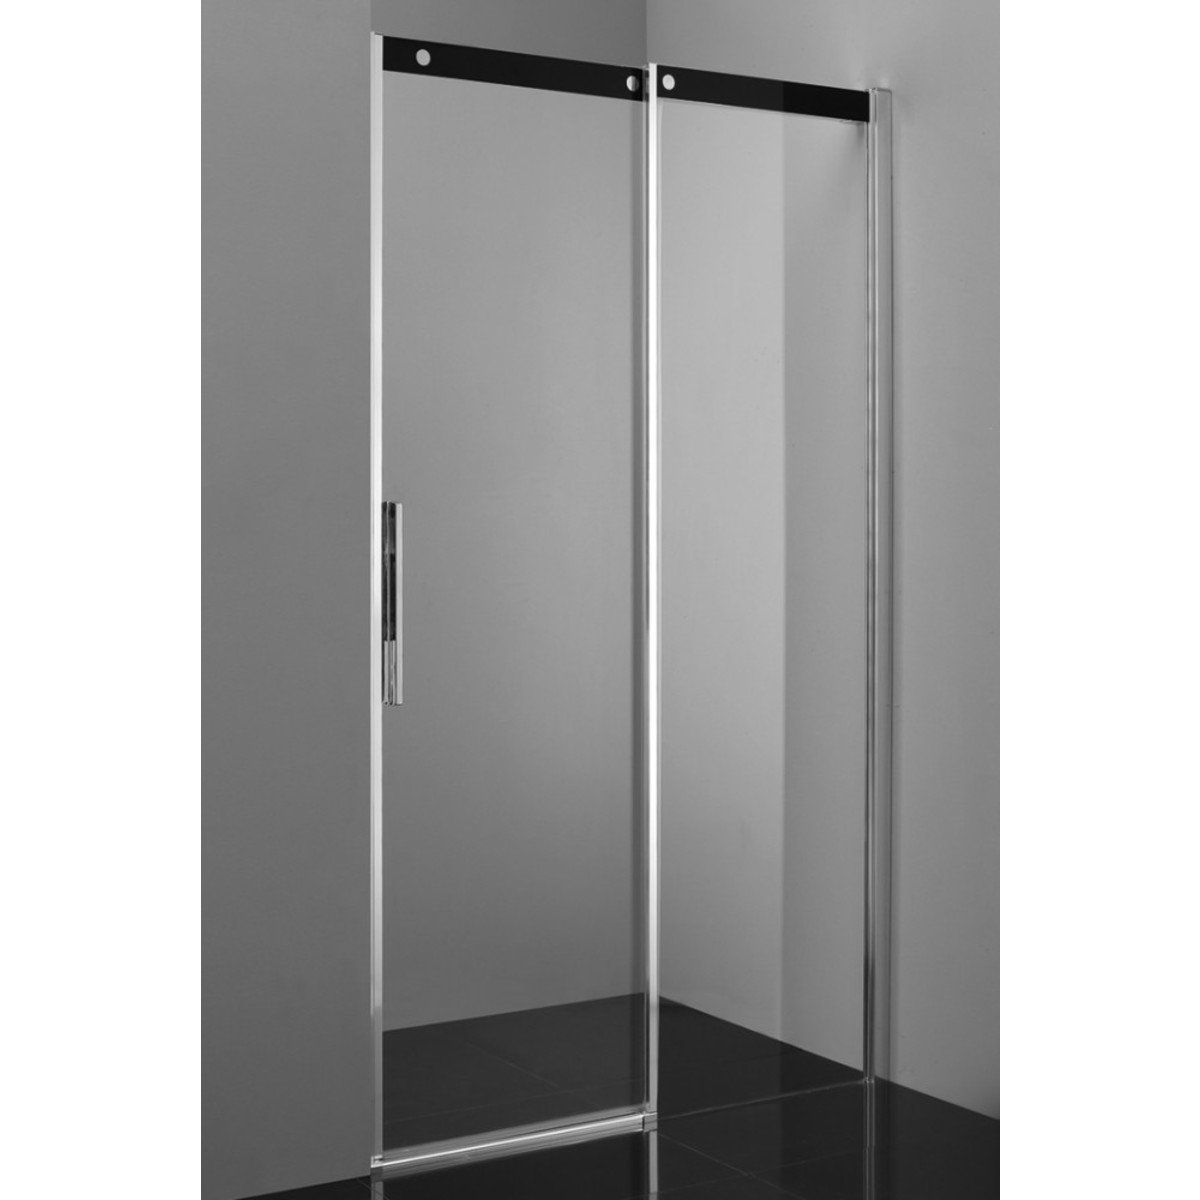 saniclass slide porte de douche 140cm droite avec traitement anticalcaire vitre de s curit 8mm. Black Bedroom Furniture Sets. Home Design Ideas